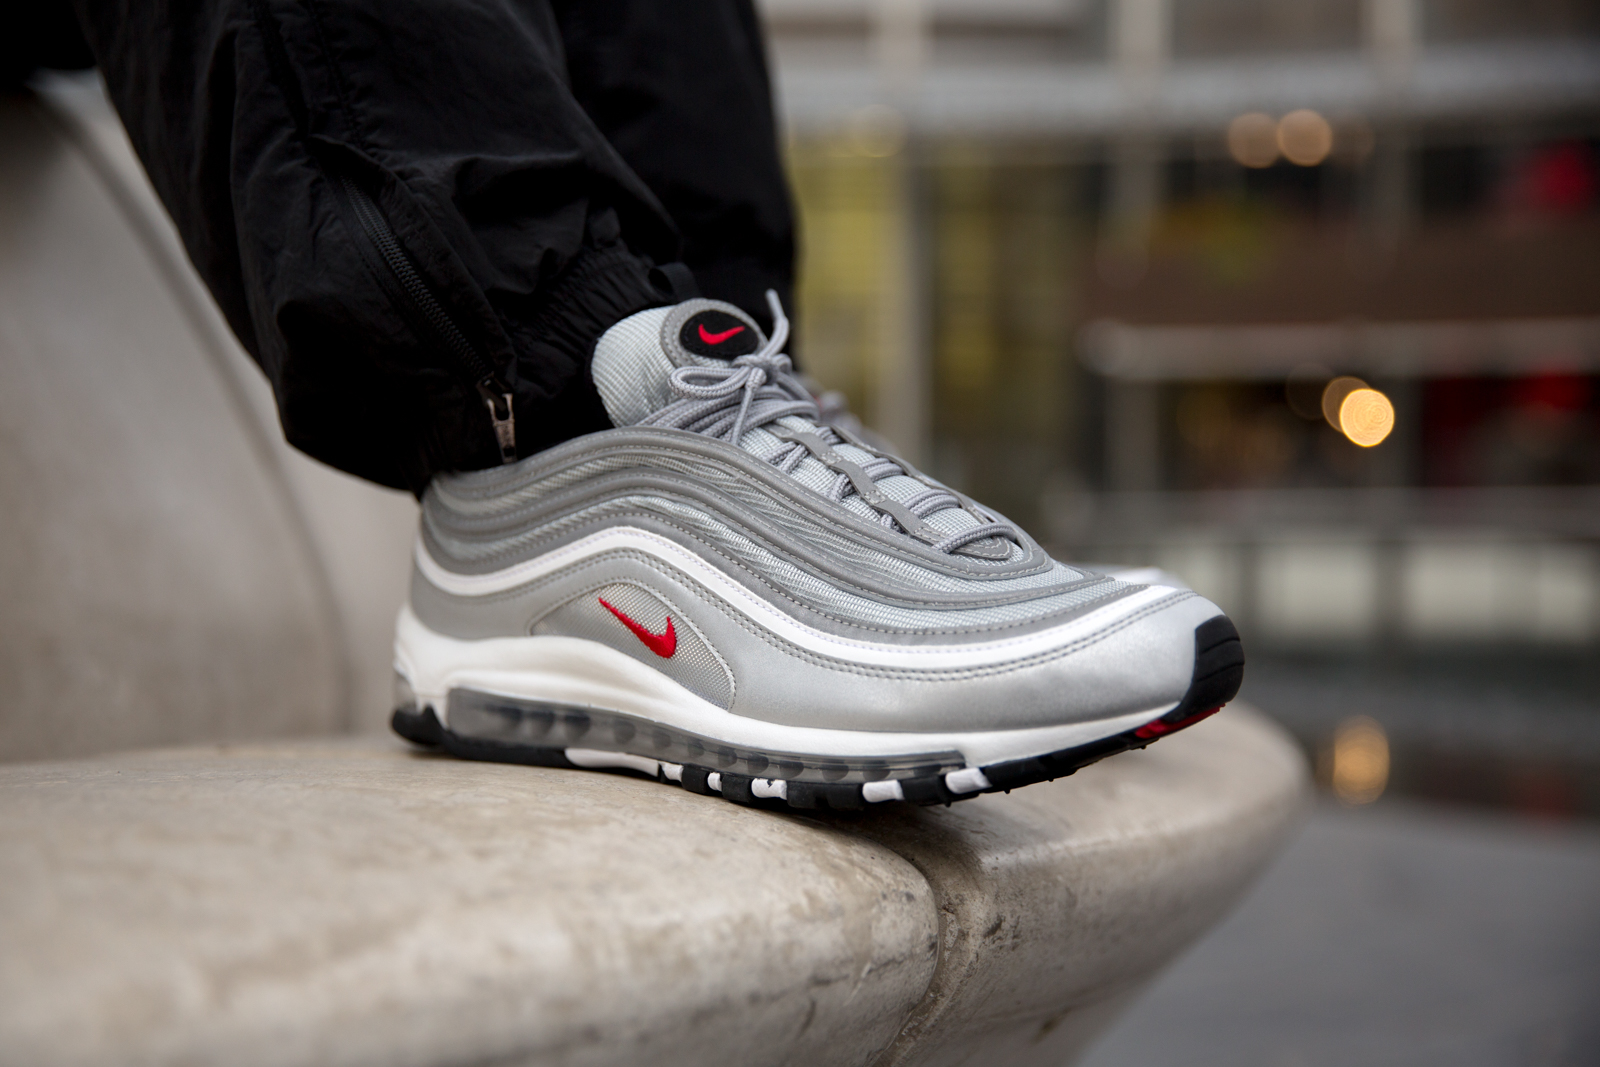 Returning for the last time this year in it's unmistakable, full Silver hue, the Air Max 97 has made a strong comeback for its 20th anniversary.